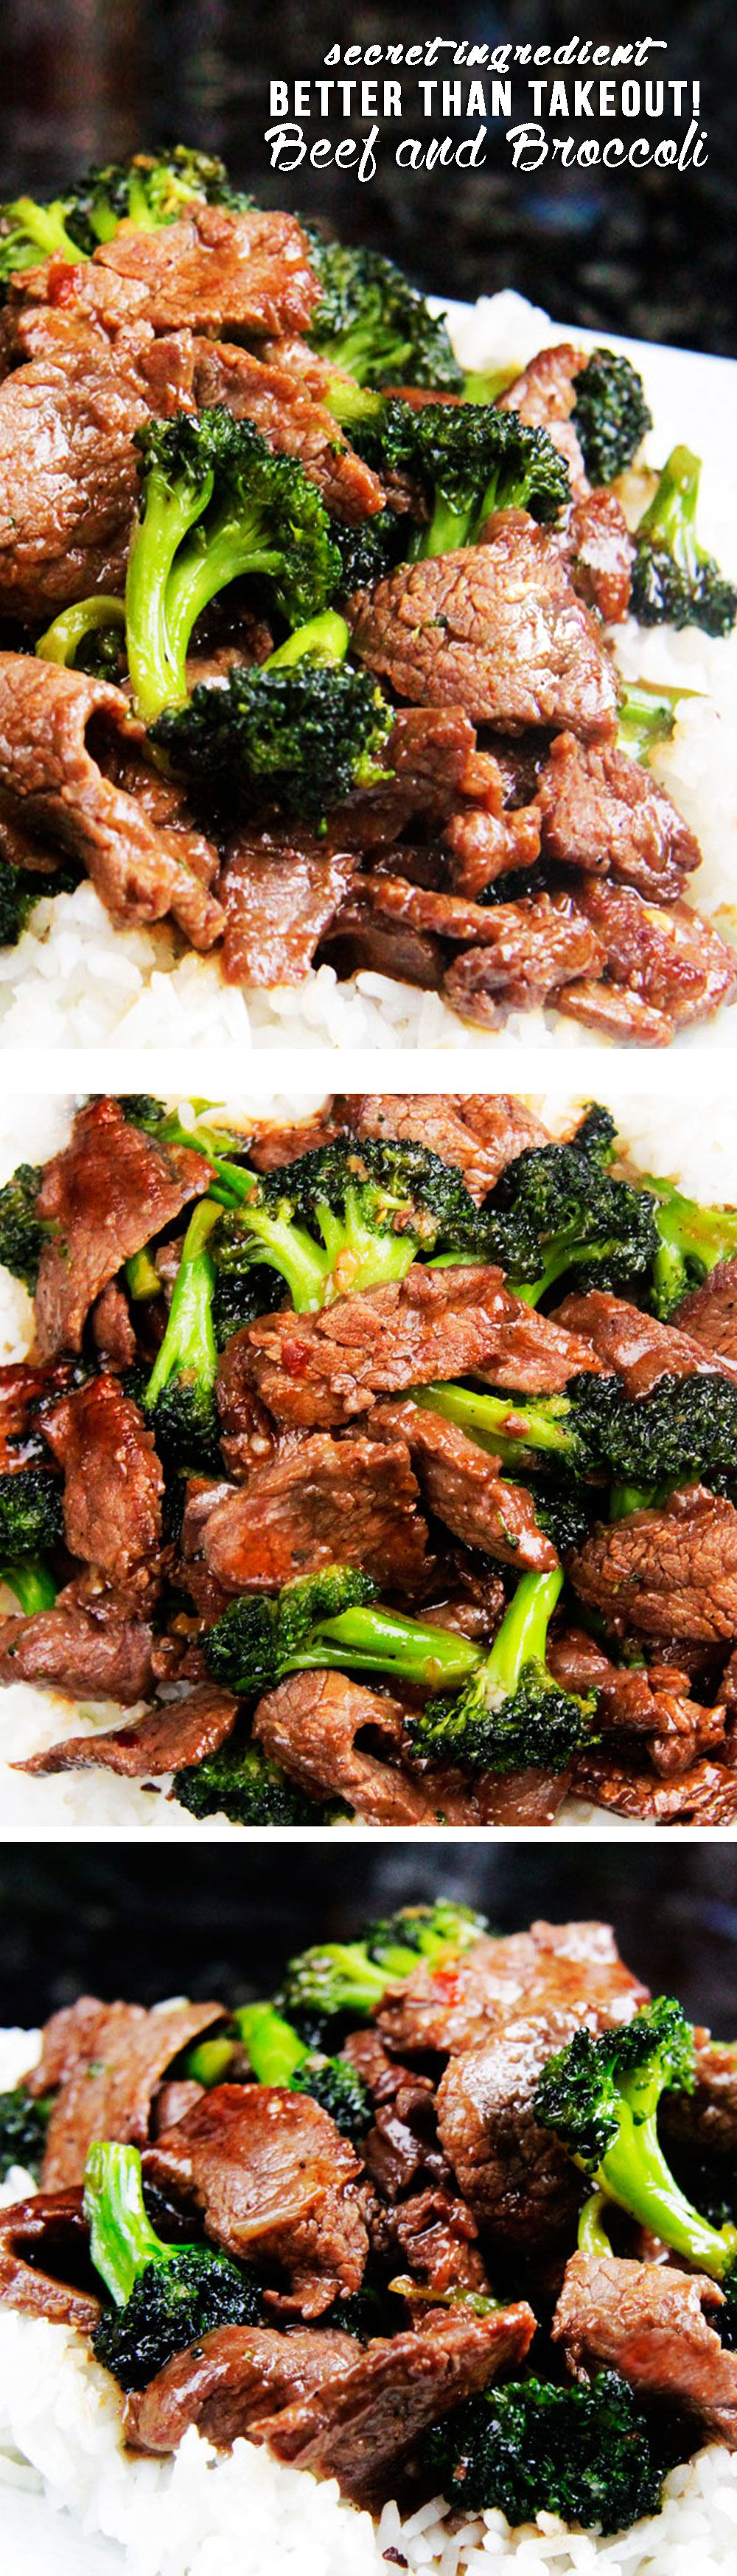 Best 4 Chinese Food Delivery in Carlsbad, NM with Reviews ...